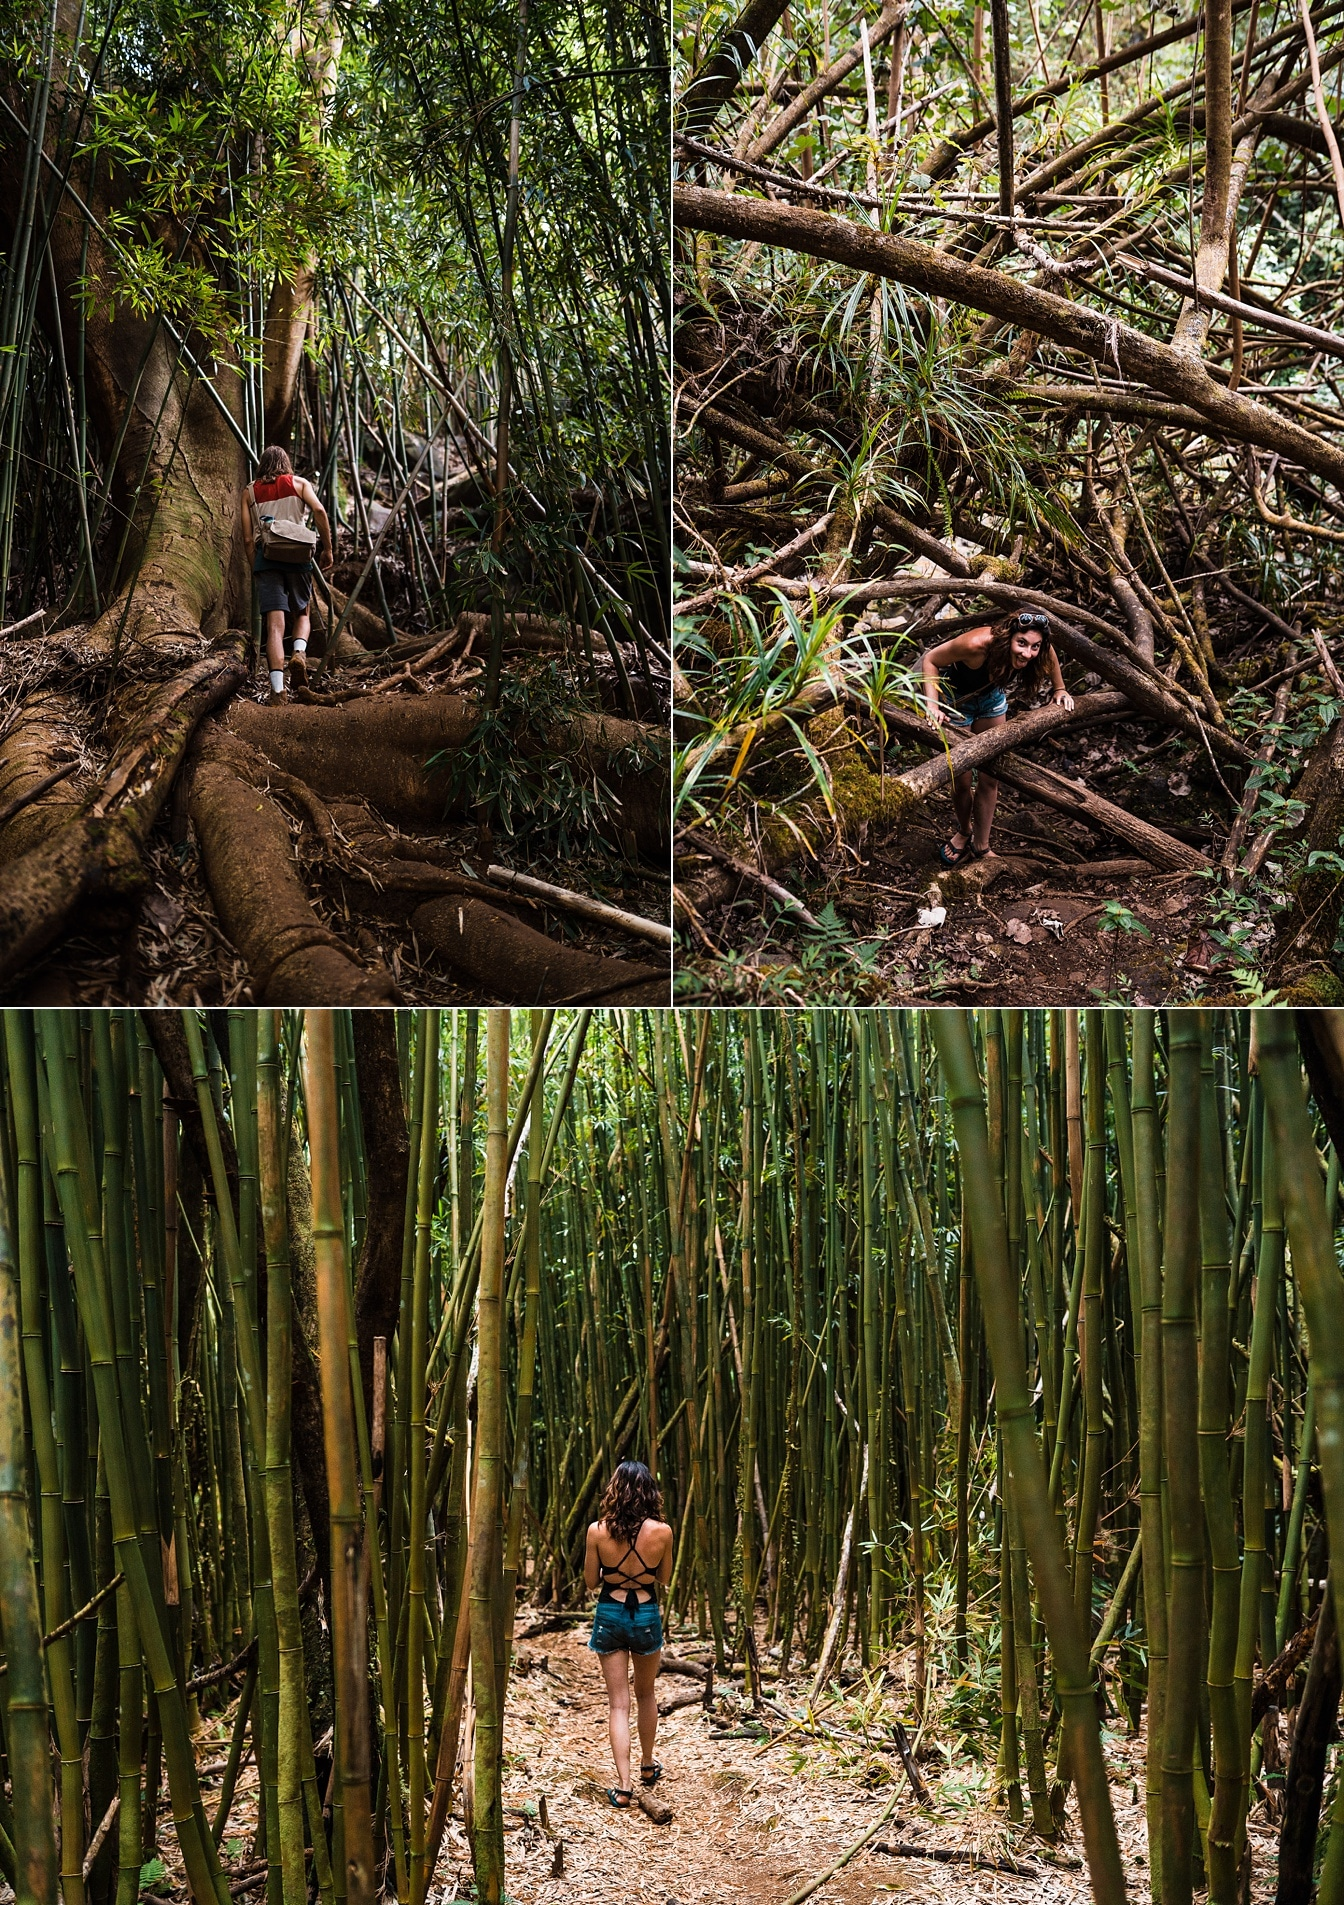 Kauai jungle hike bamboo forest